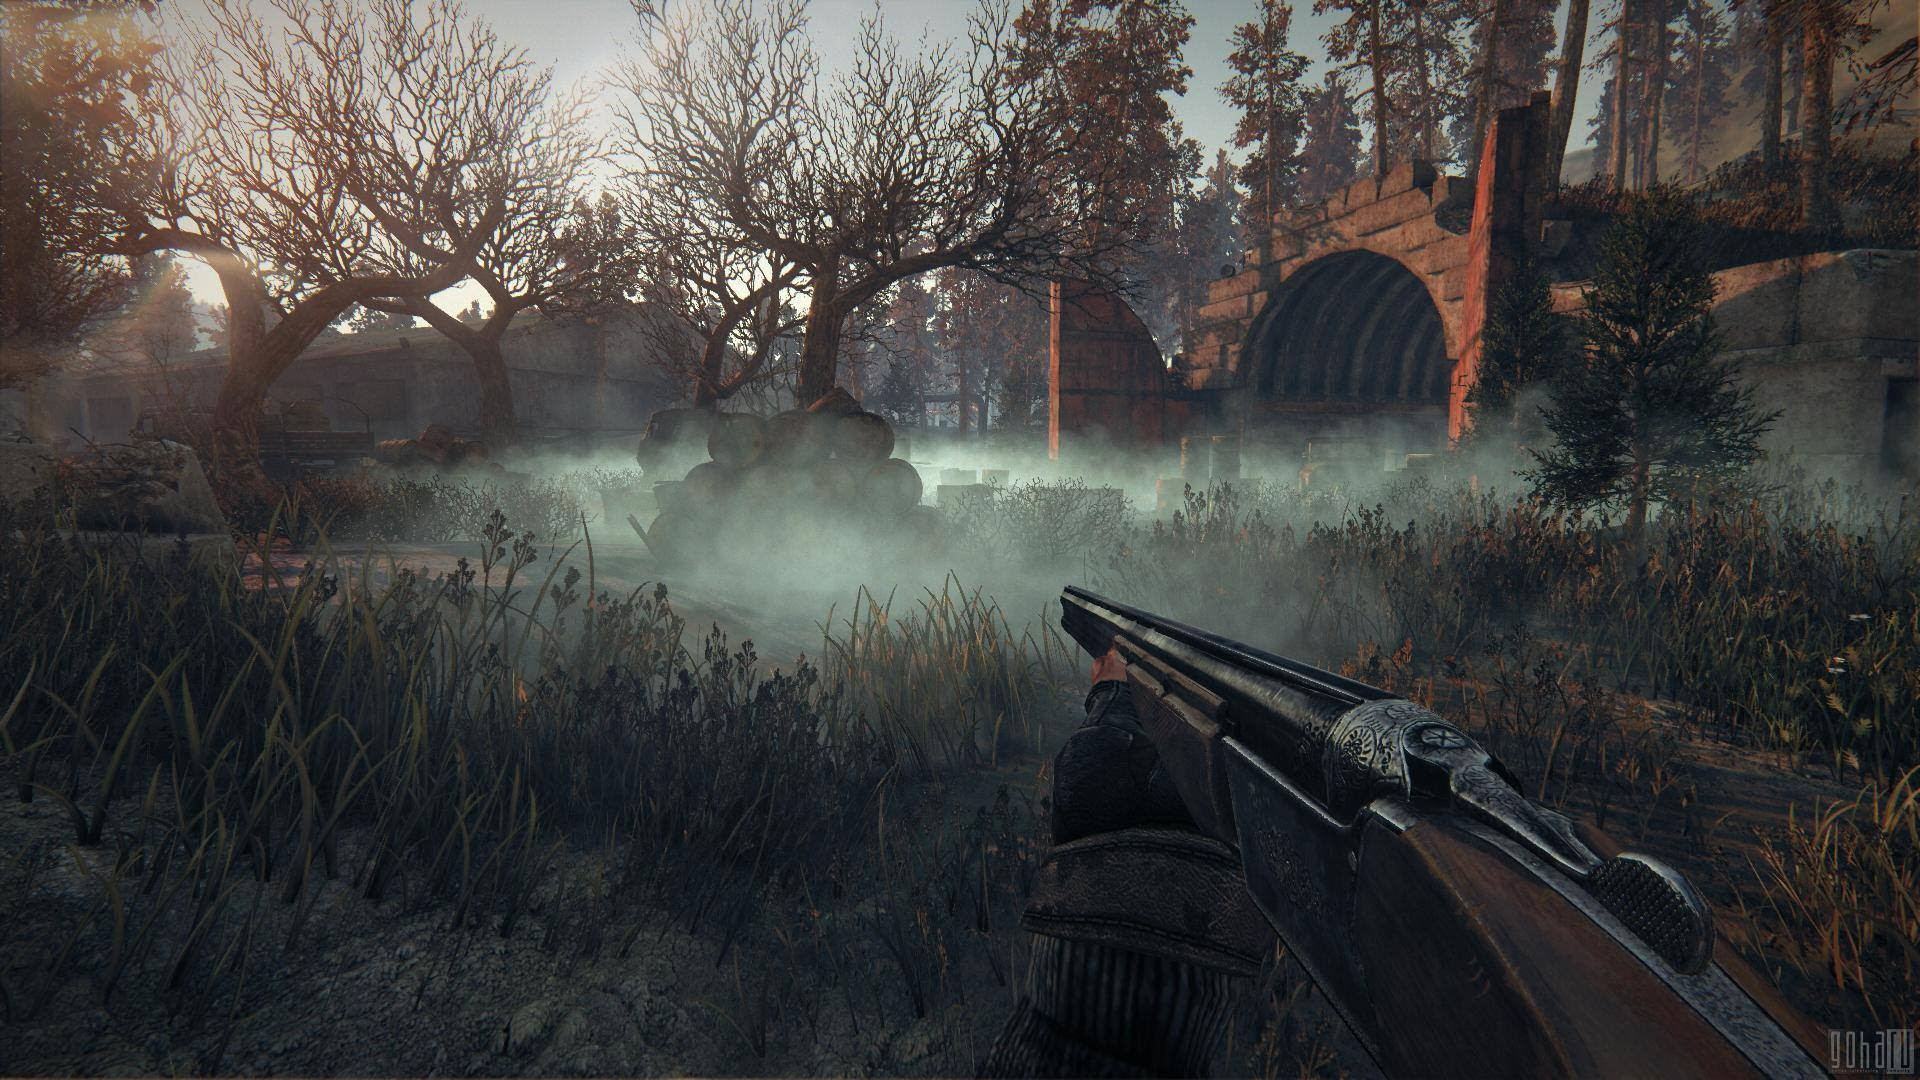 Stalker 2 shows new shots, shows Unreal Engine 4 power